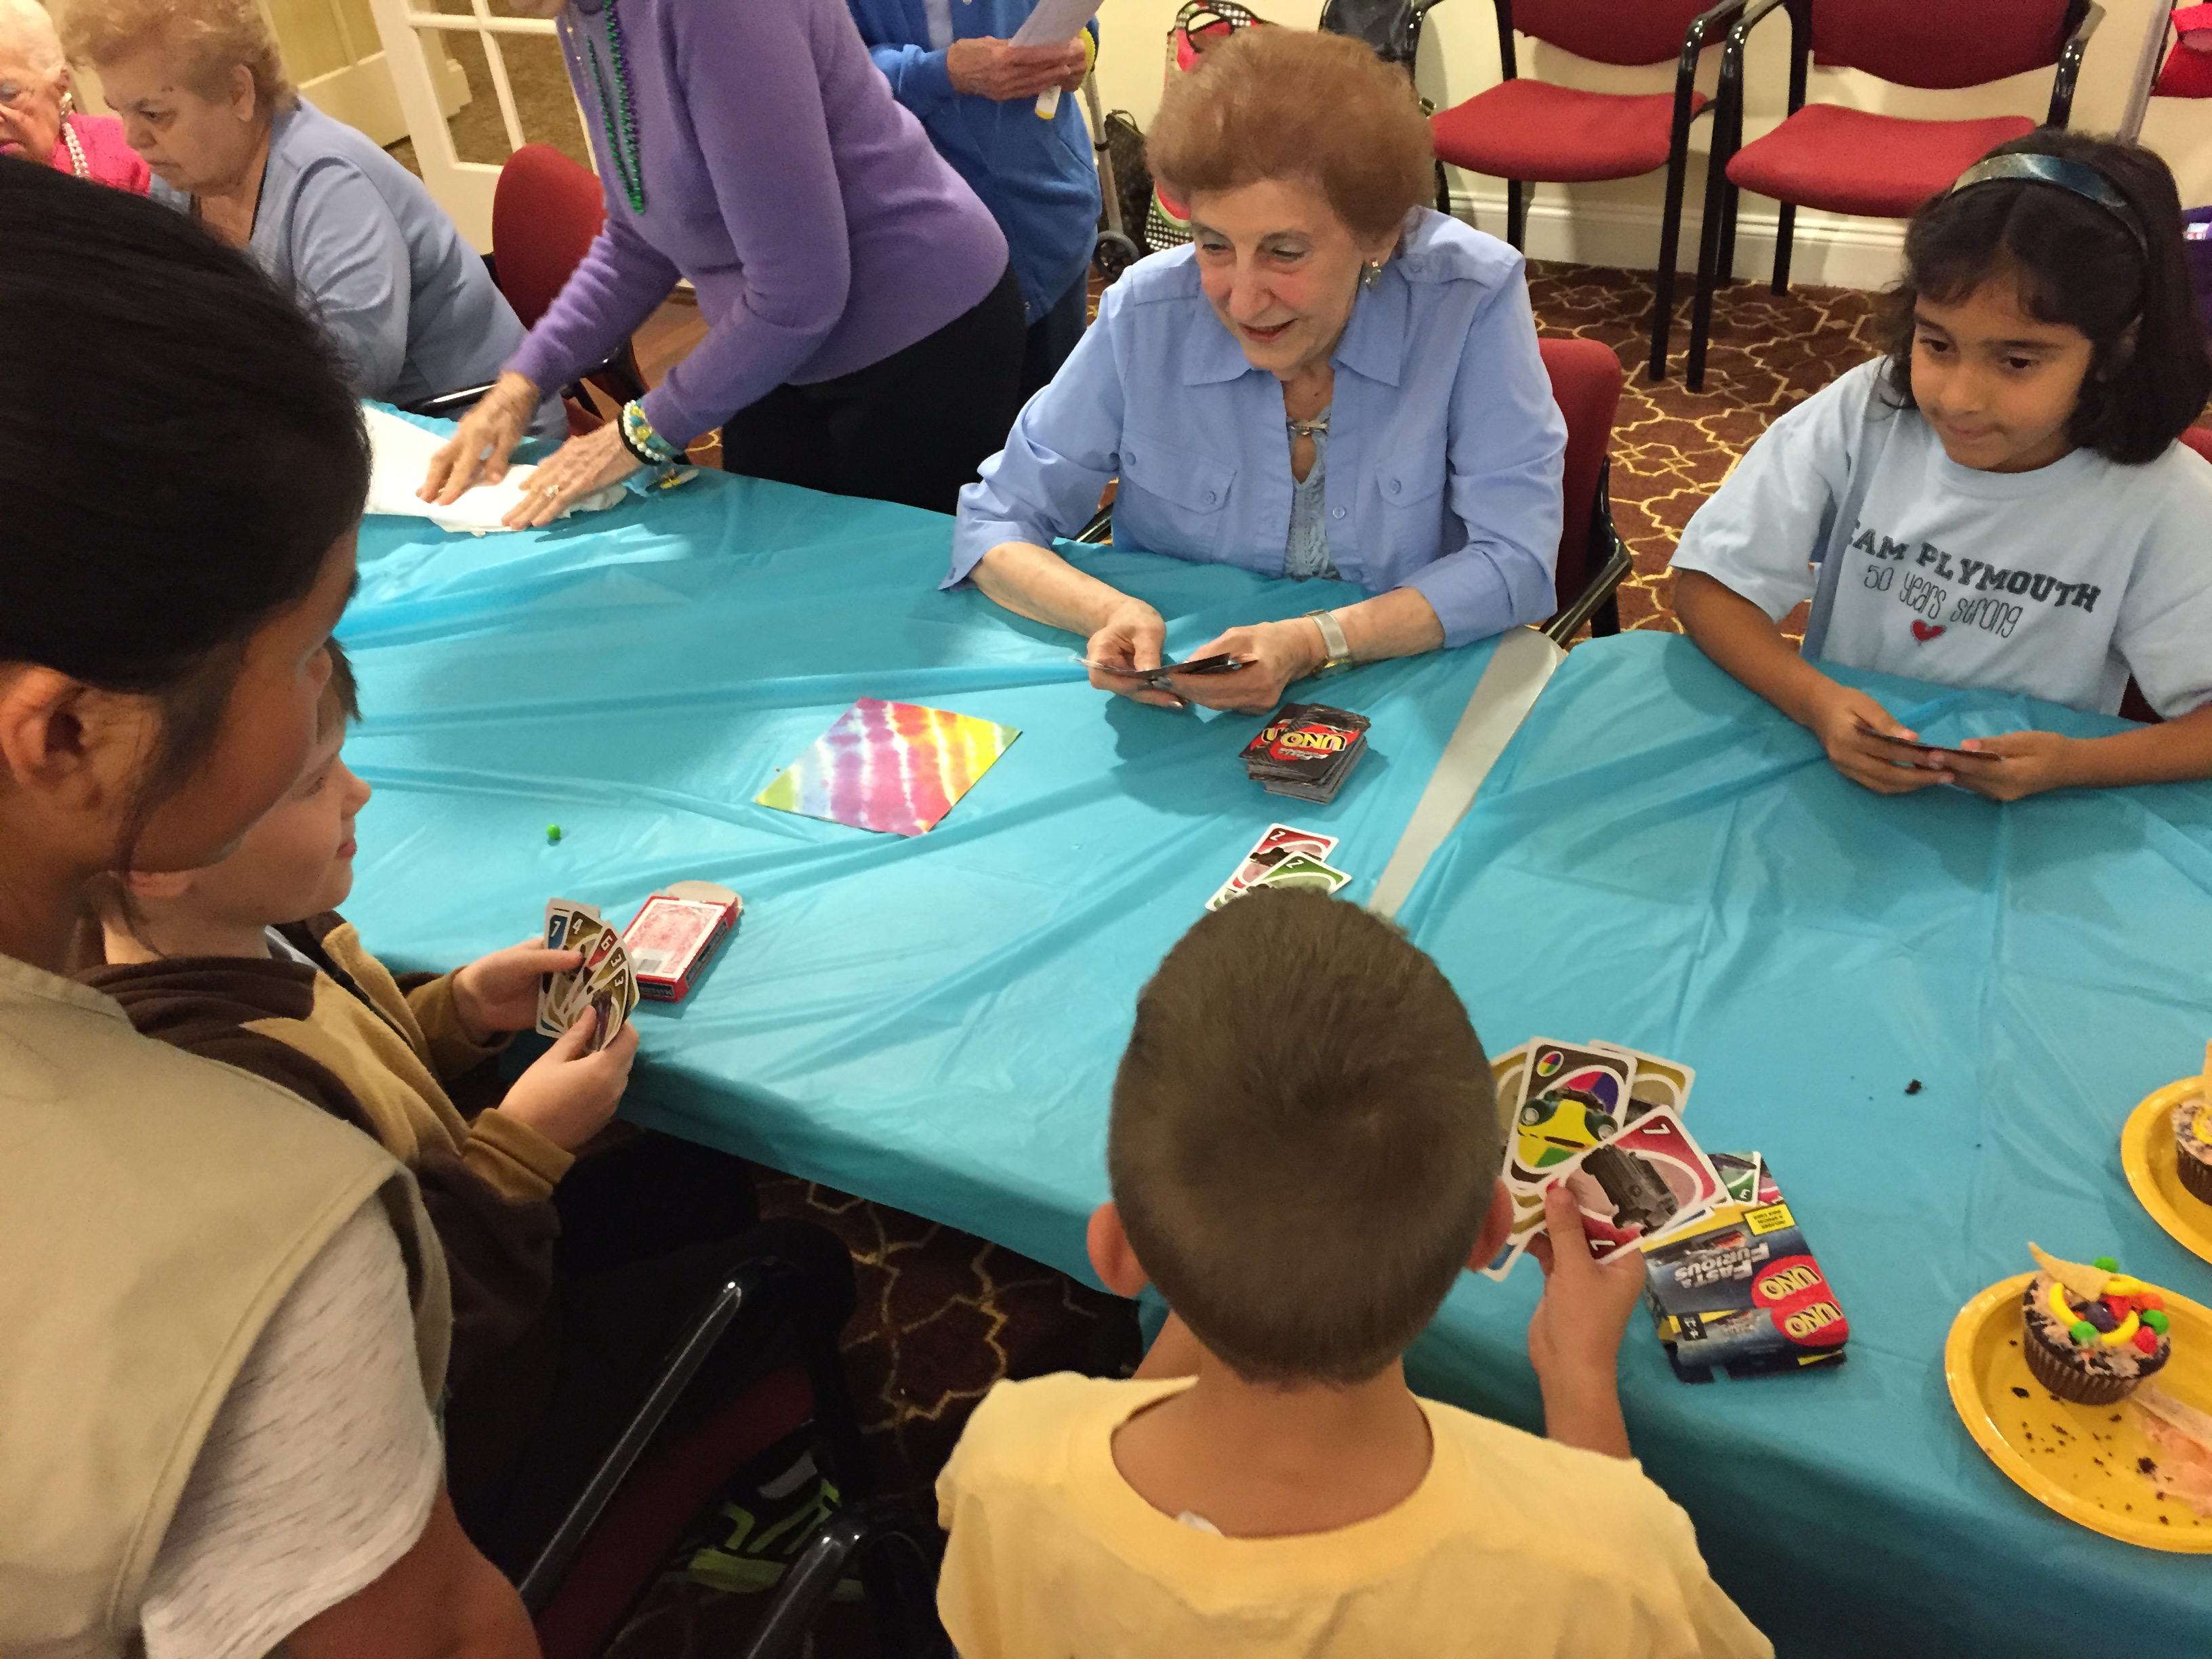 Three students and a senior play uno while a Girl Scout watches.